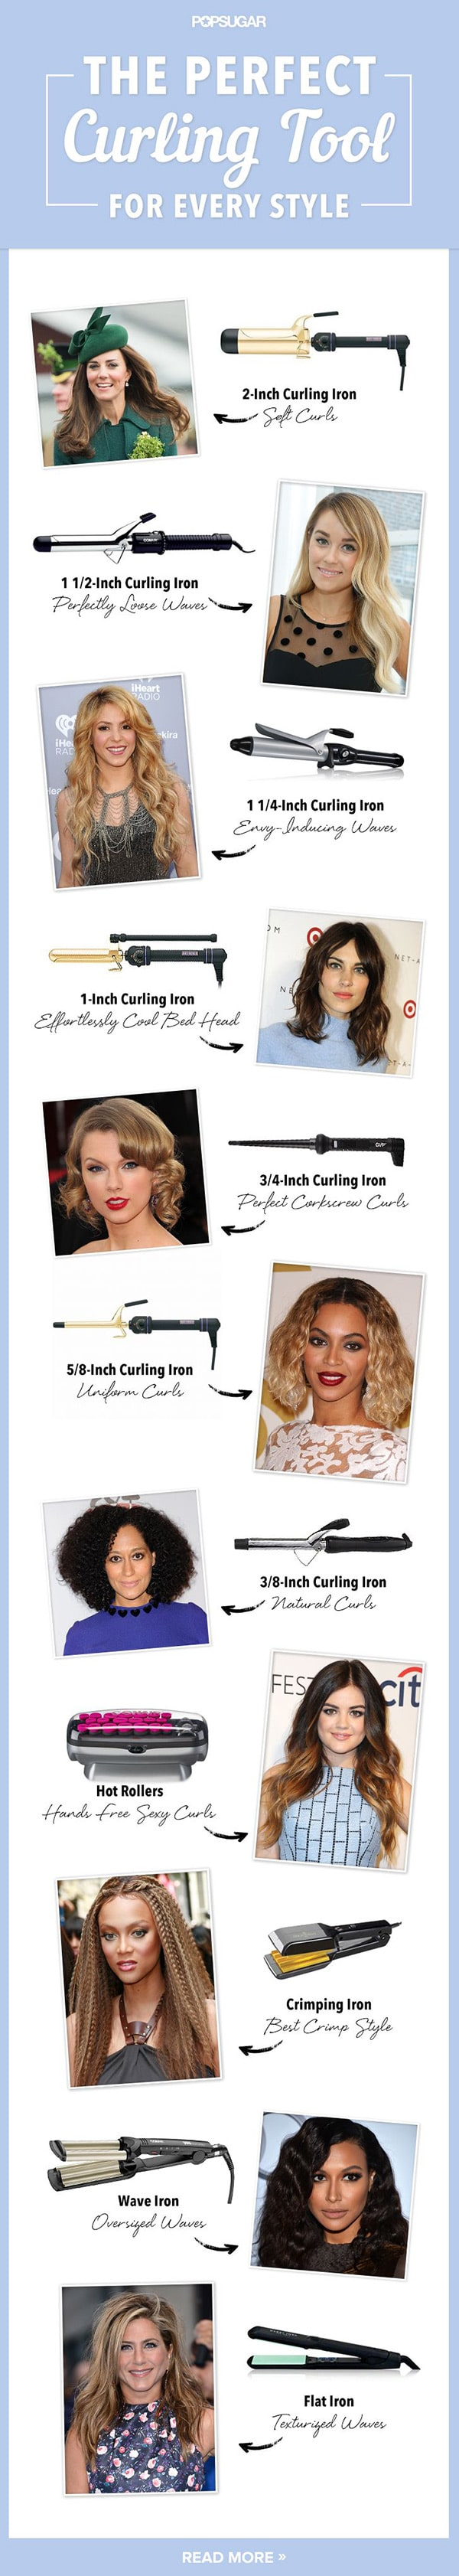 perfect curling tool for every style